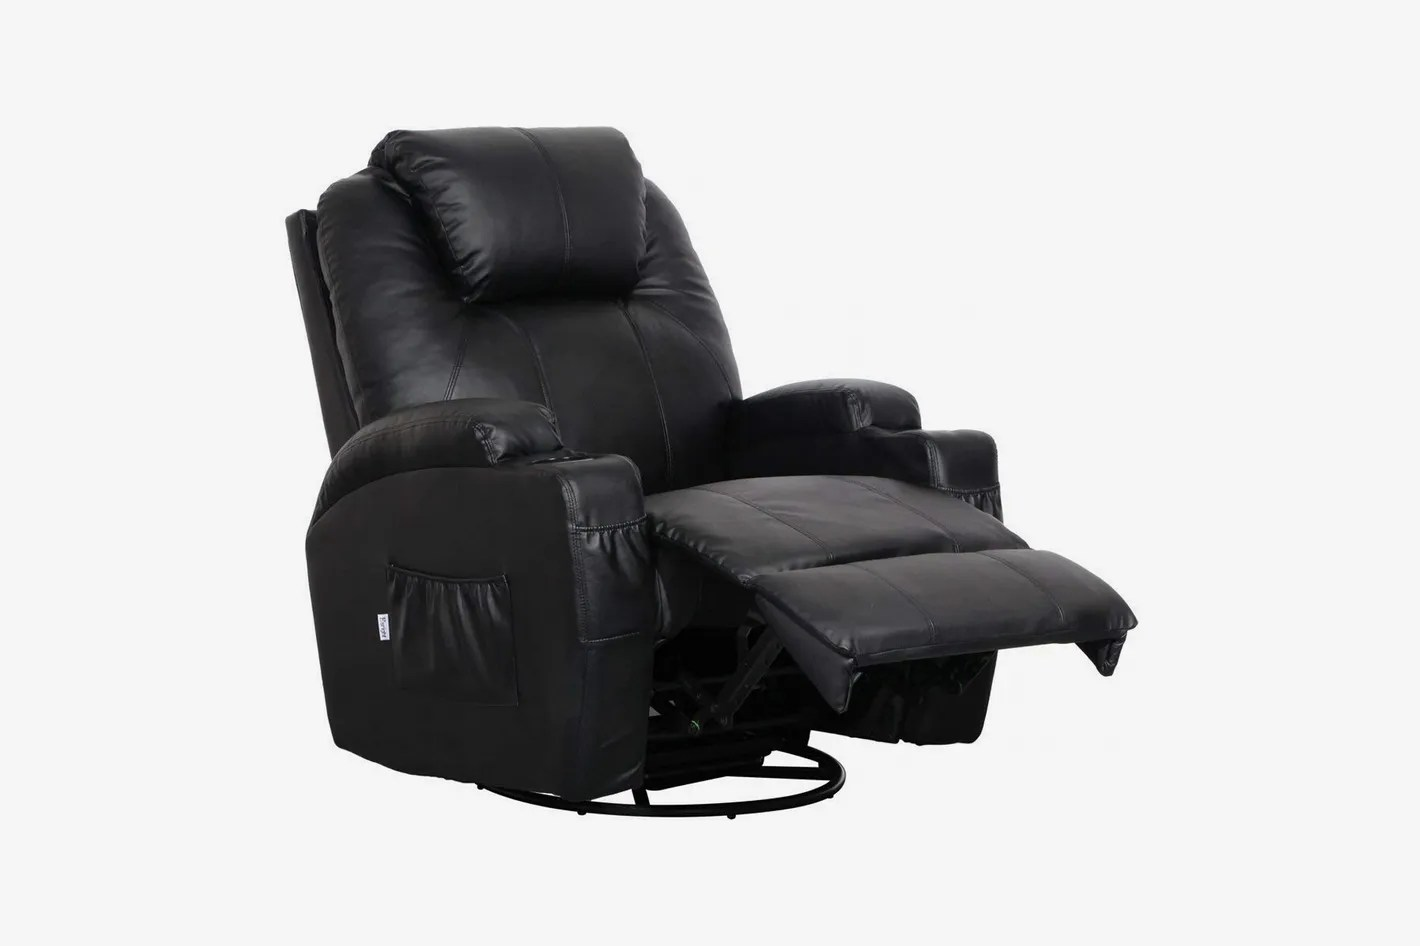 Chair Leather Reclining Swivel Esright Massage Recliner Chair Heated Pu Leather Ergonomic Lounge 360 Degree Swivel